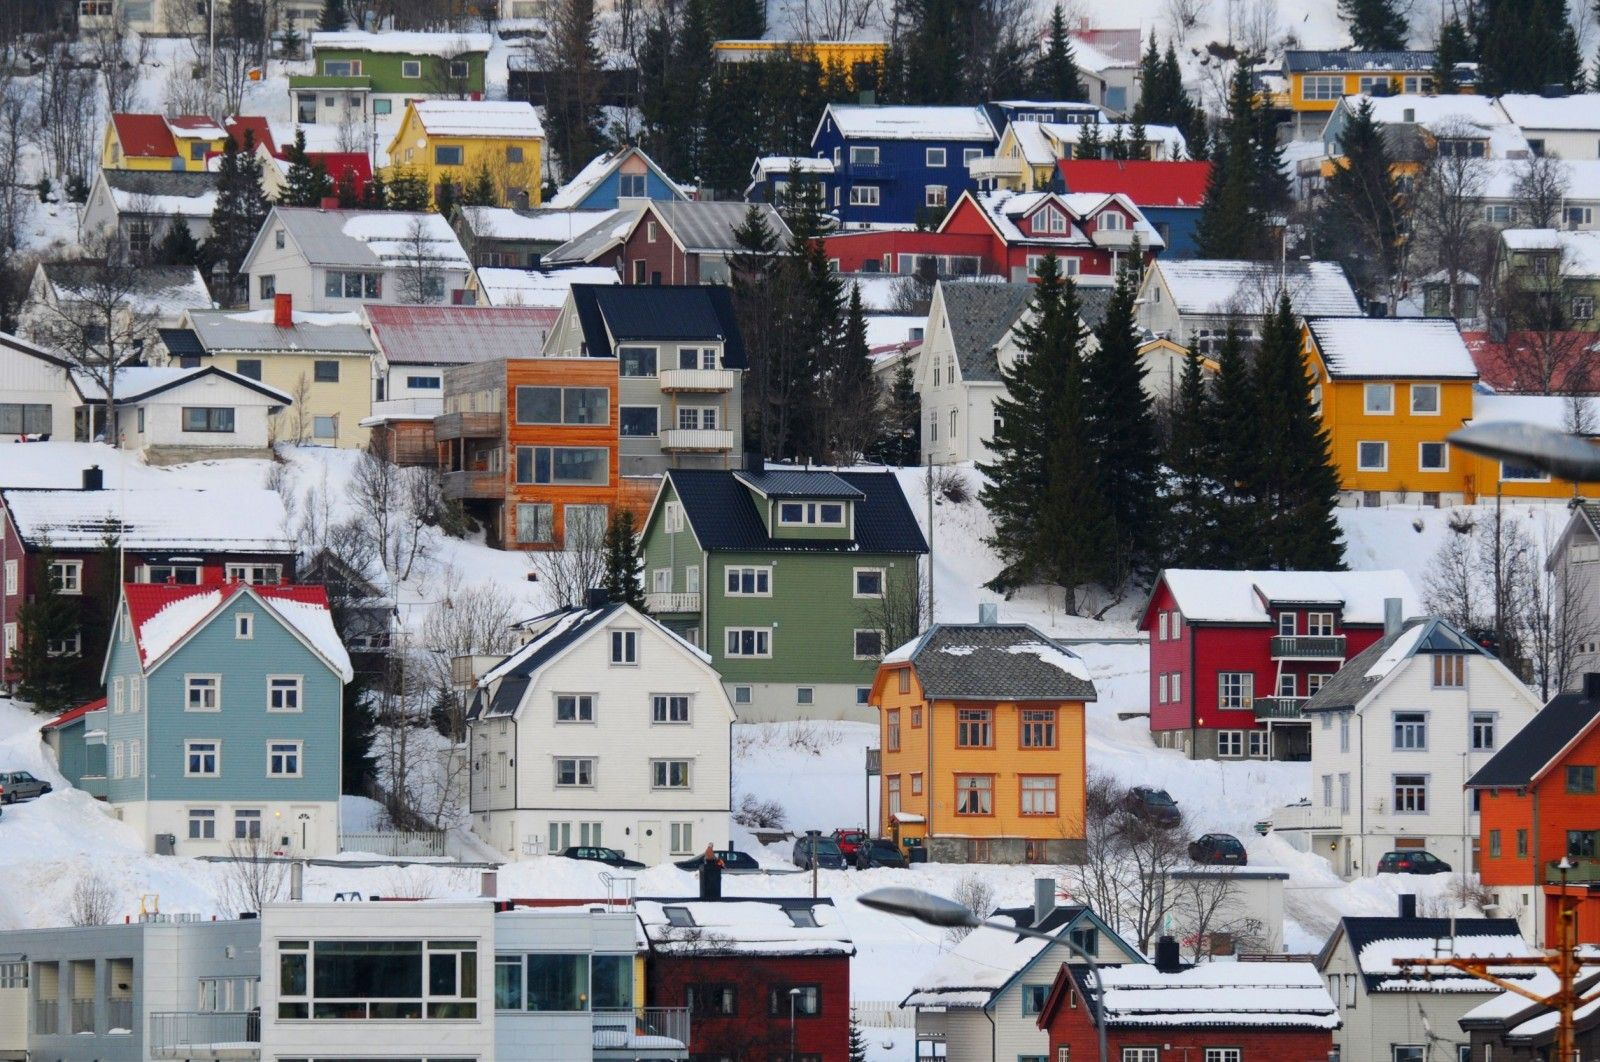 the-norwegian-colorful-houses-on-hillsides-in-tromso-Norway-1600x1062.jpg (1600×1062)